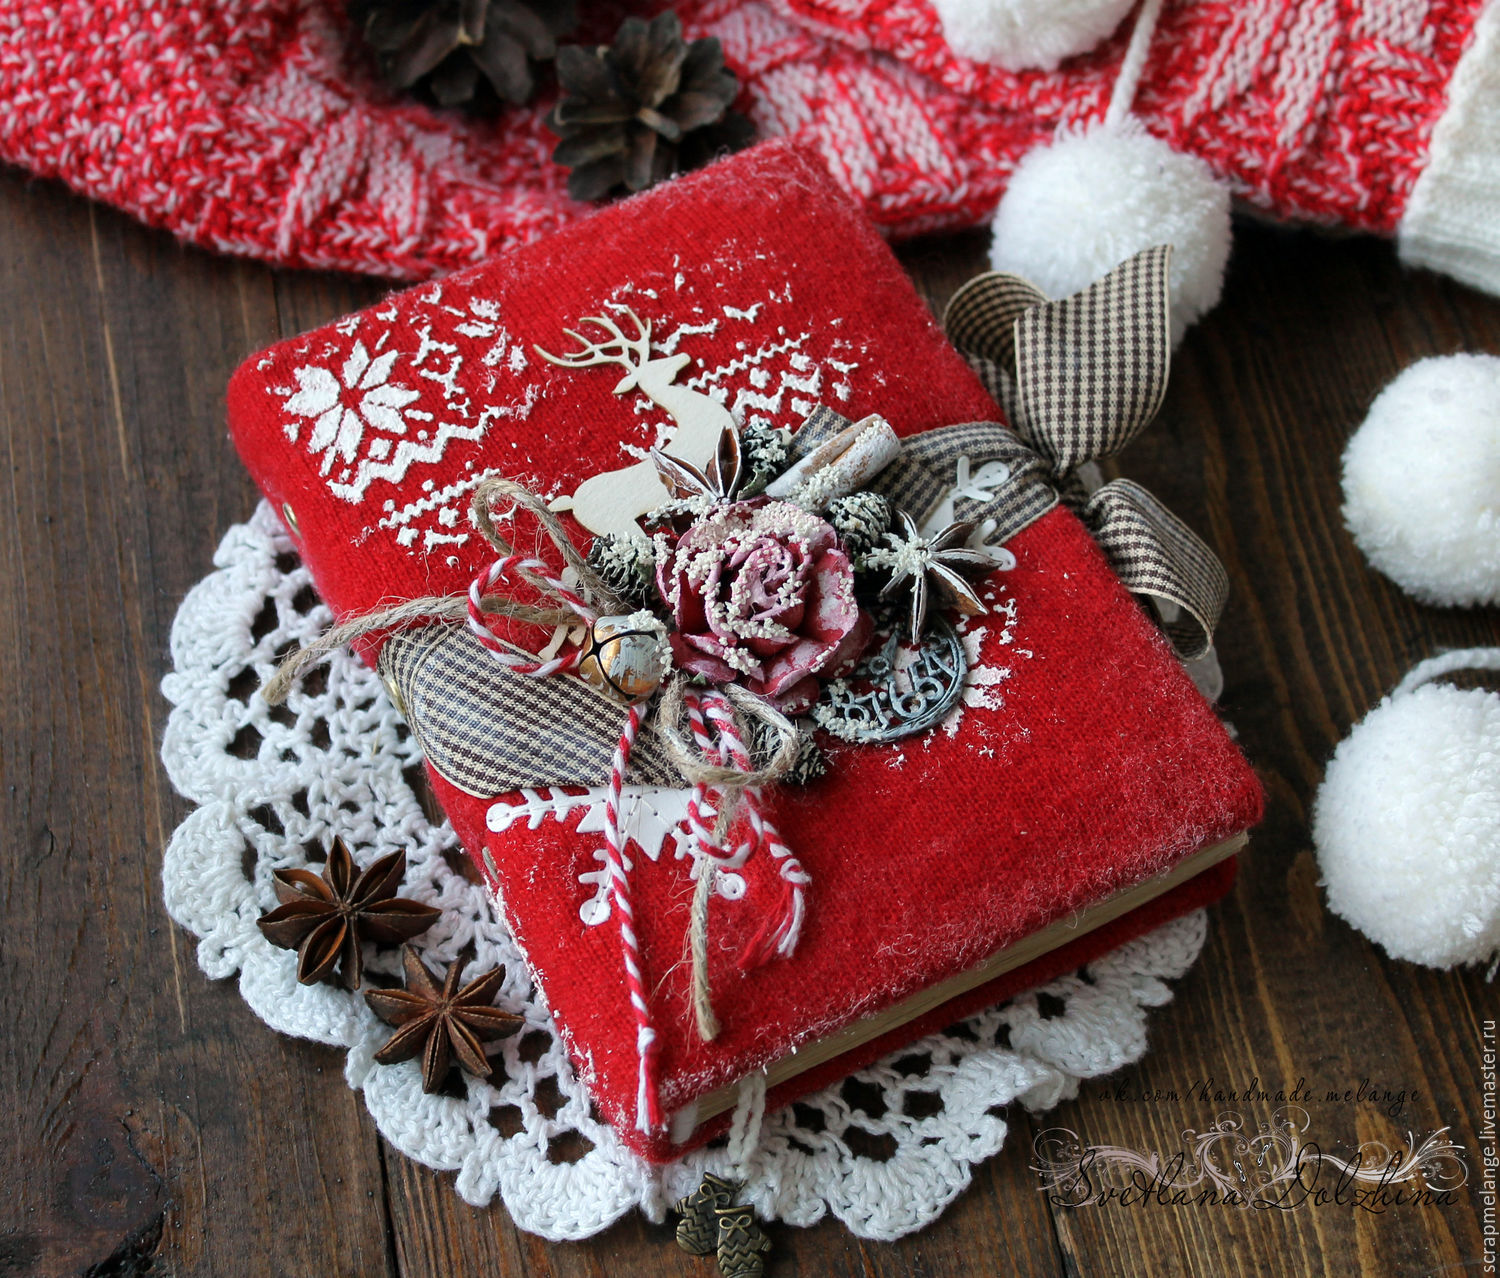 Notebook for records 'Winter sketches' red new year, Notebooks, Tyumen,  Фото №1